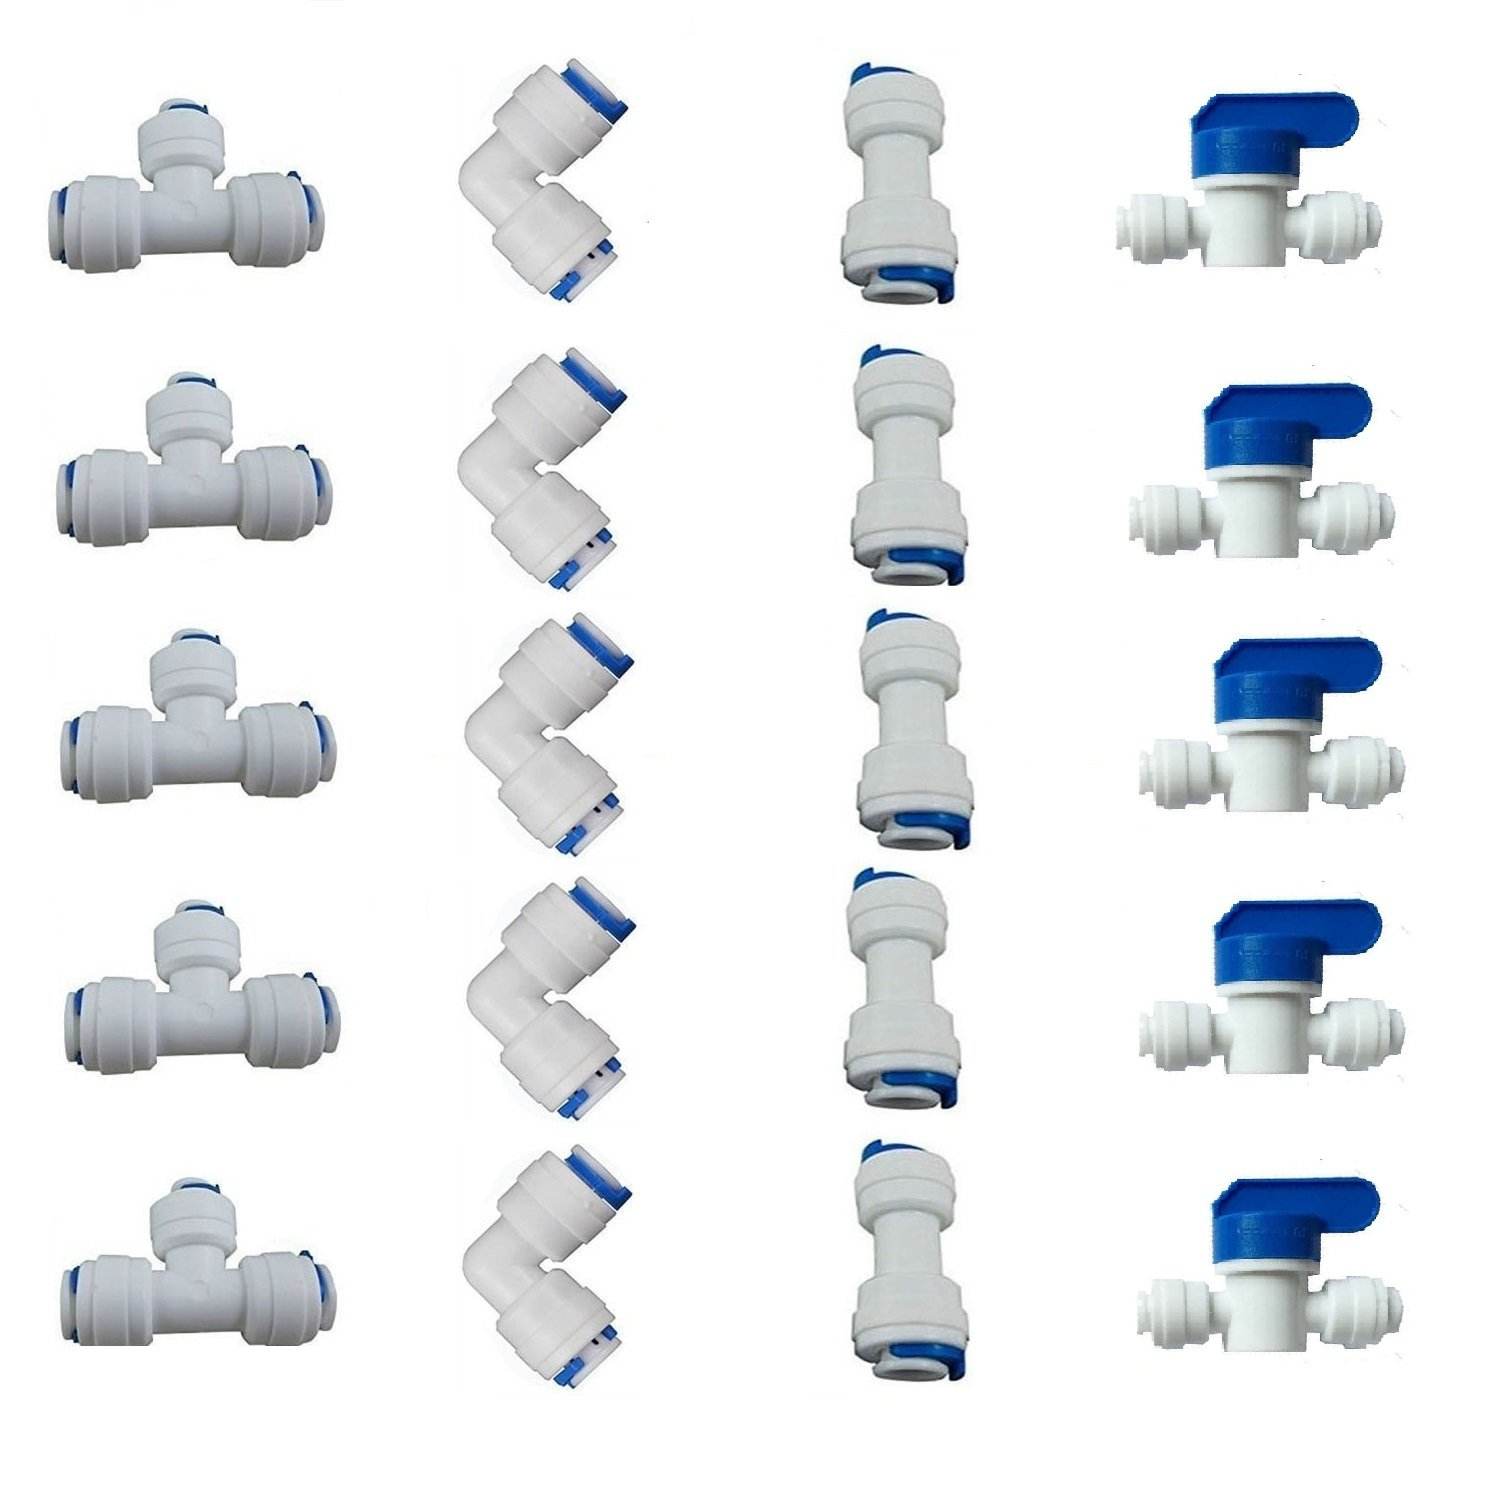 "1/4"" OD Quick Connect Push in to Connect for RO Water Reverse Osmosis System Water Tube Fitting Set of 20 (Ball Valve+T+I+L Type Combo)"